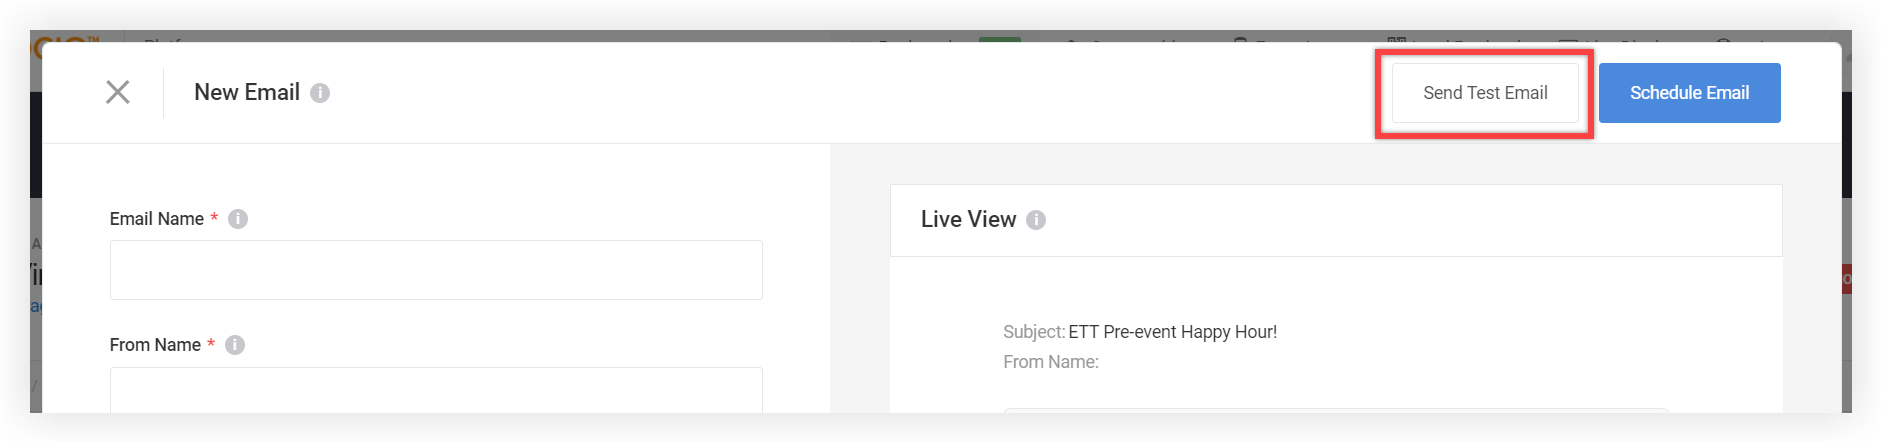 Screenshot of the New Email modal with the Send Test Email button highlighted.